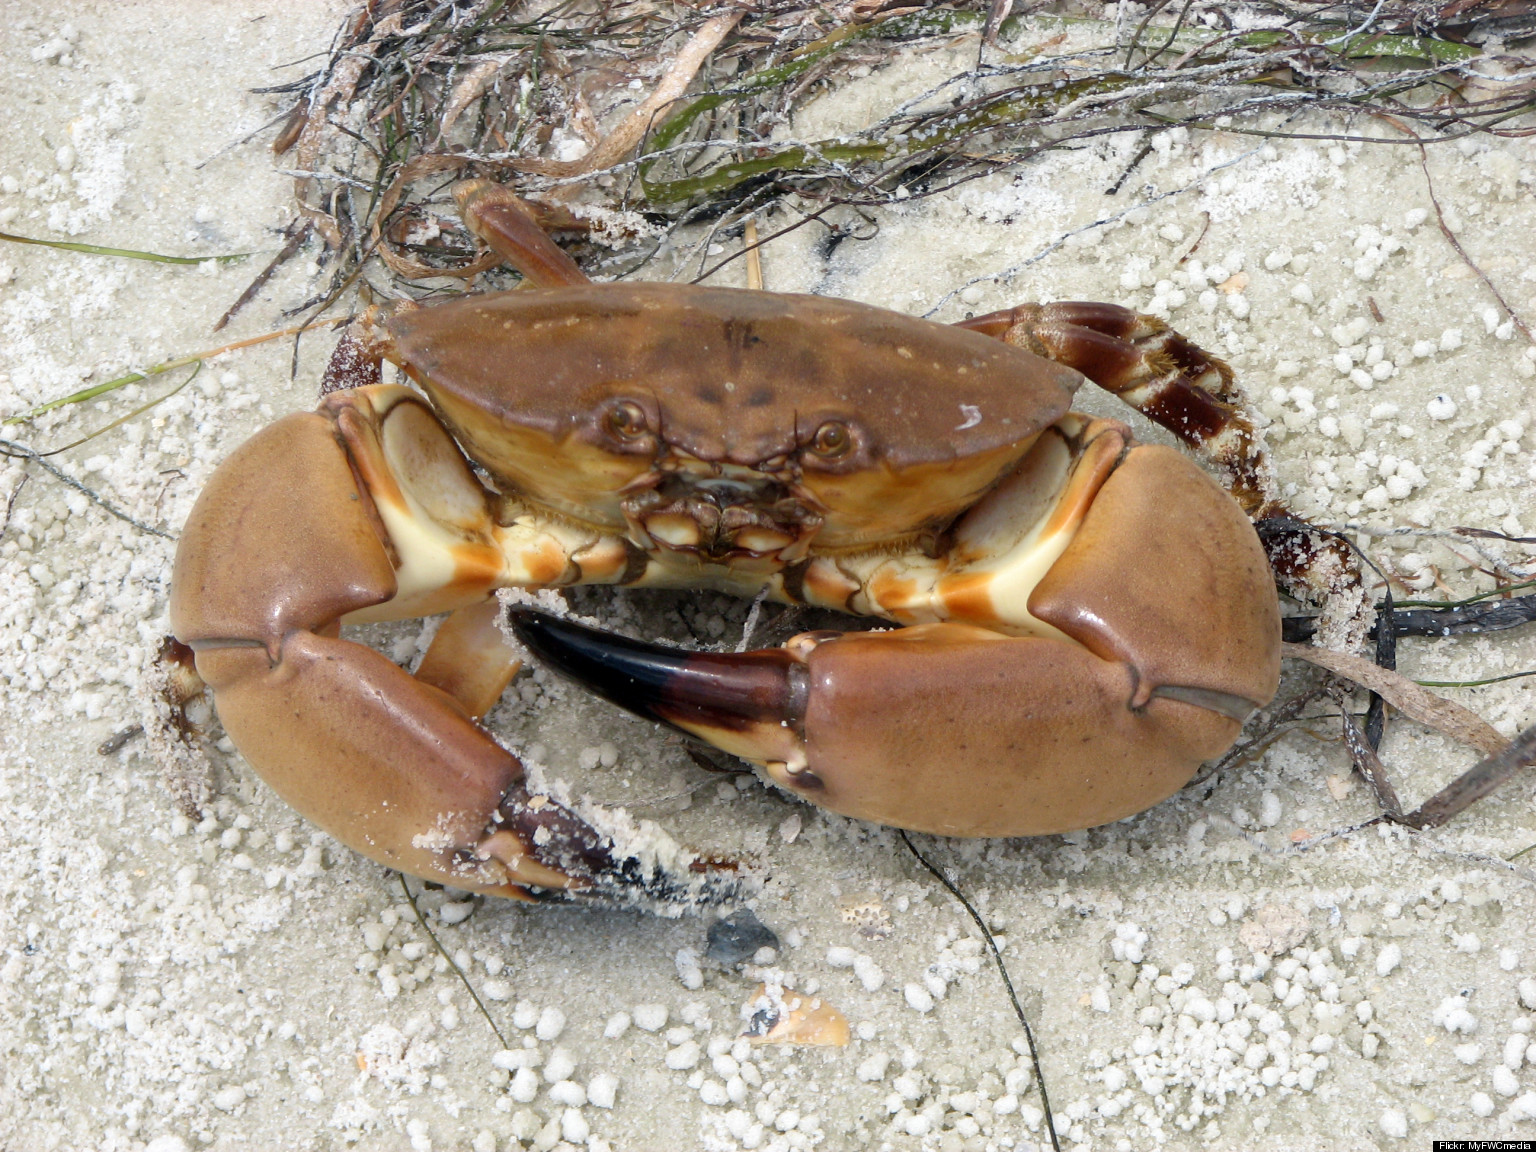 crustacean rights are stone crabs lucky really huffpost